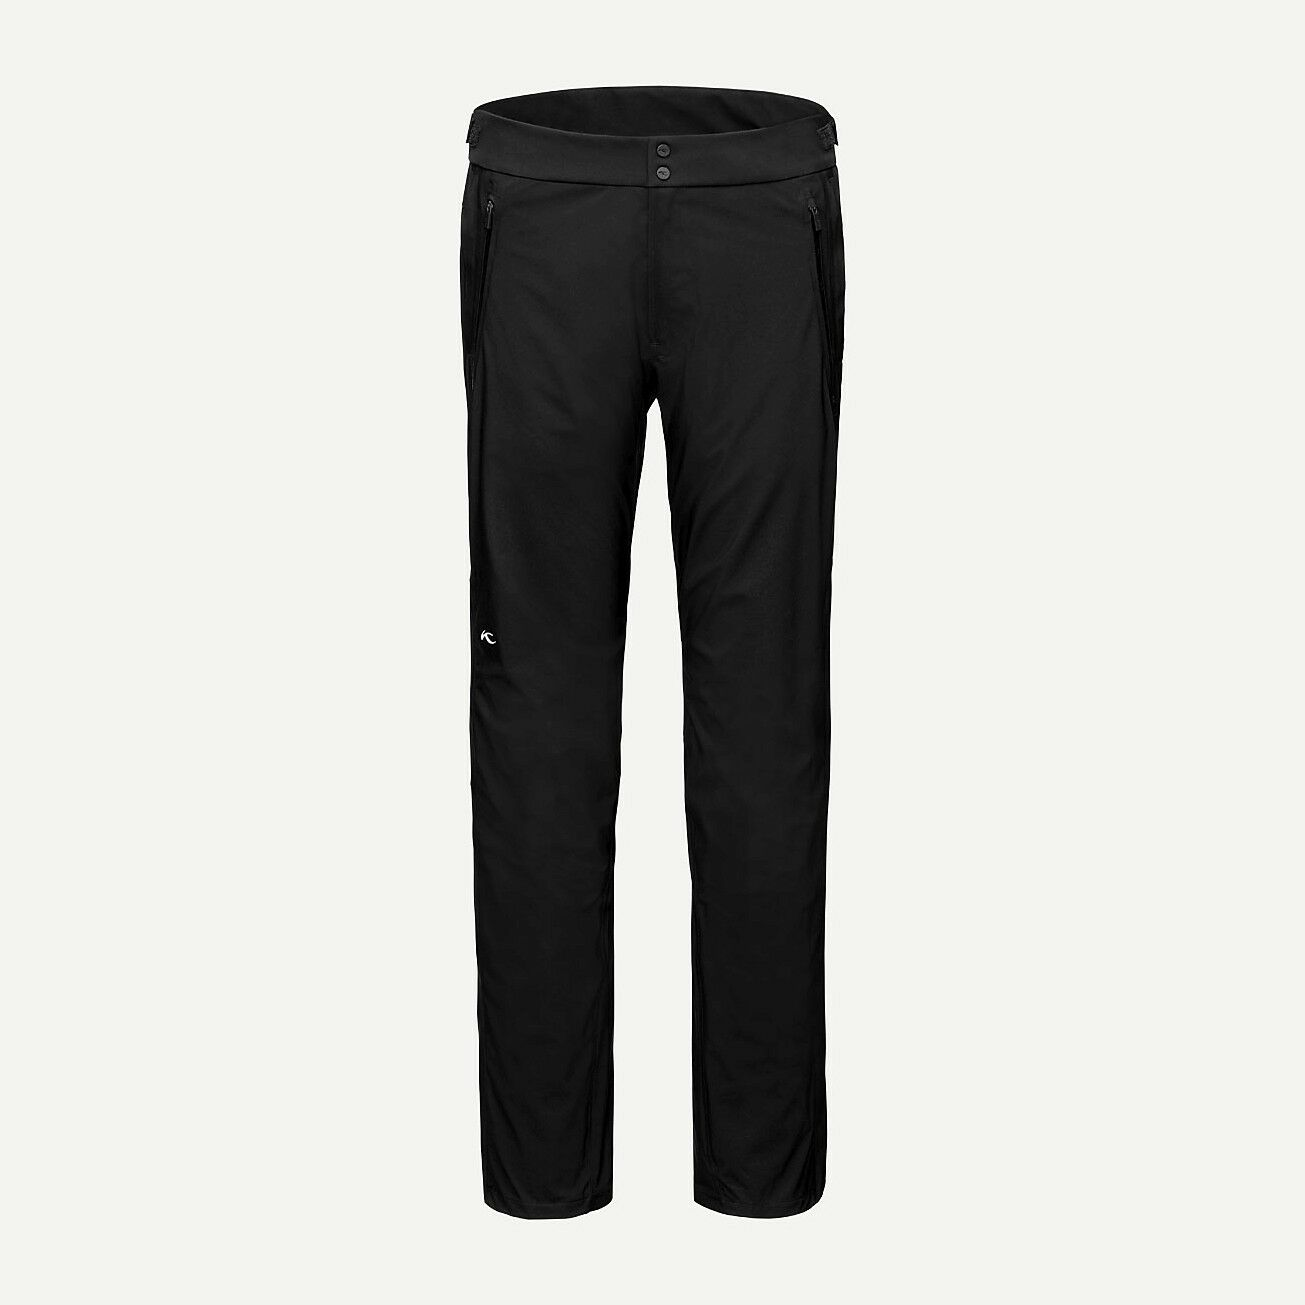 Kjus Men  Pro 3L Pant  with cheap price to get top brand